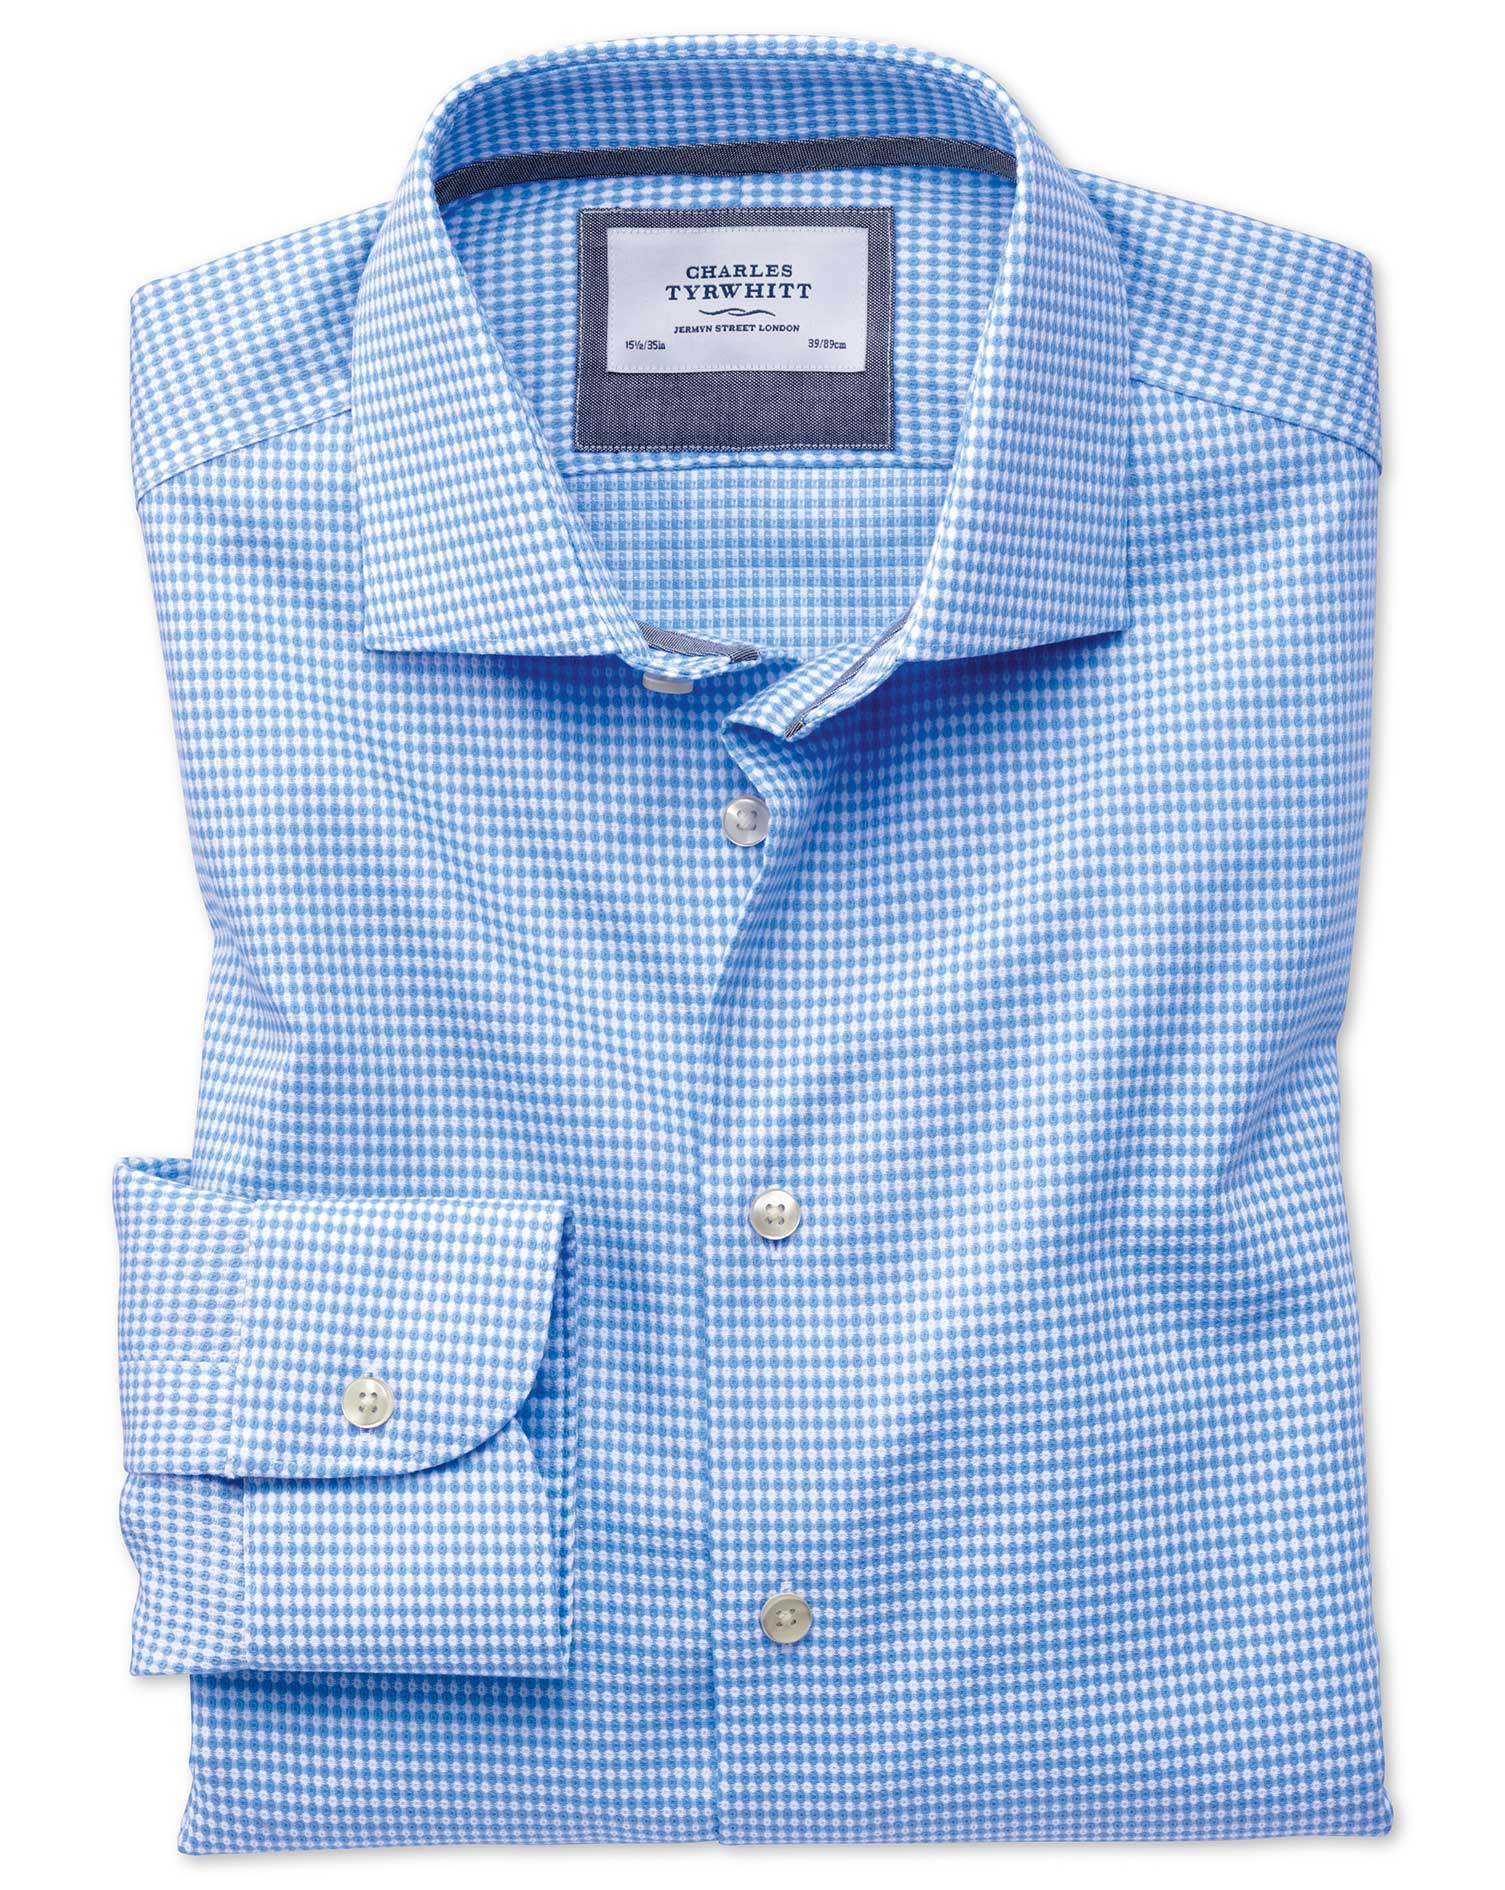 Classic Fit Semi-Cutaway Business Casual Non-Iron Modern Textures Sky Blue Cotton Formal Shirt Singl